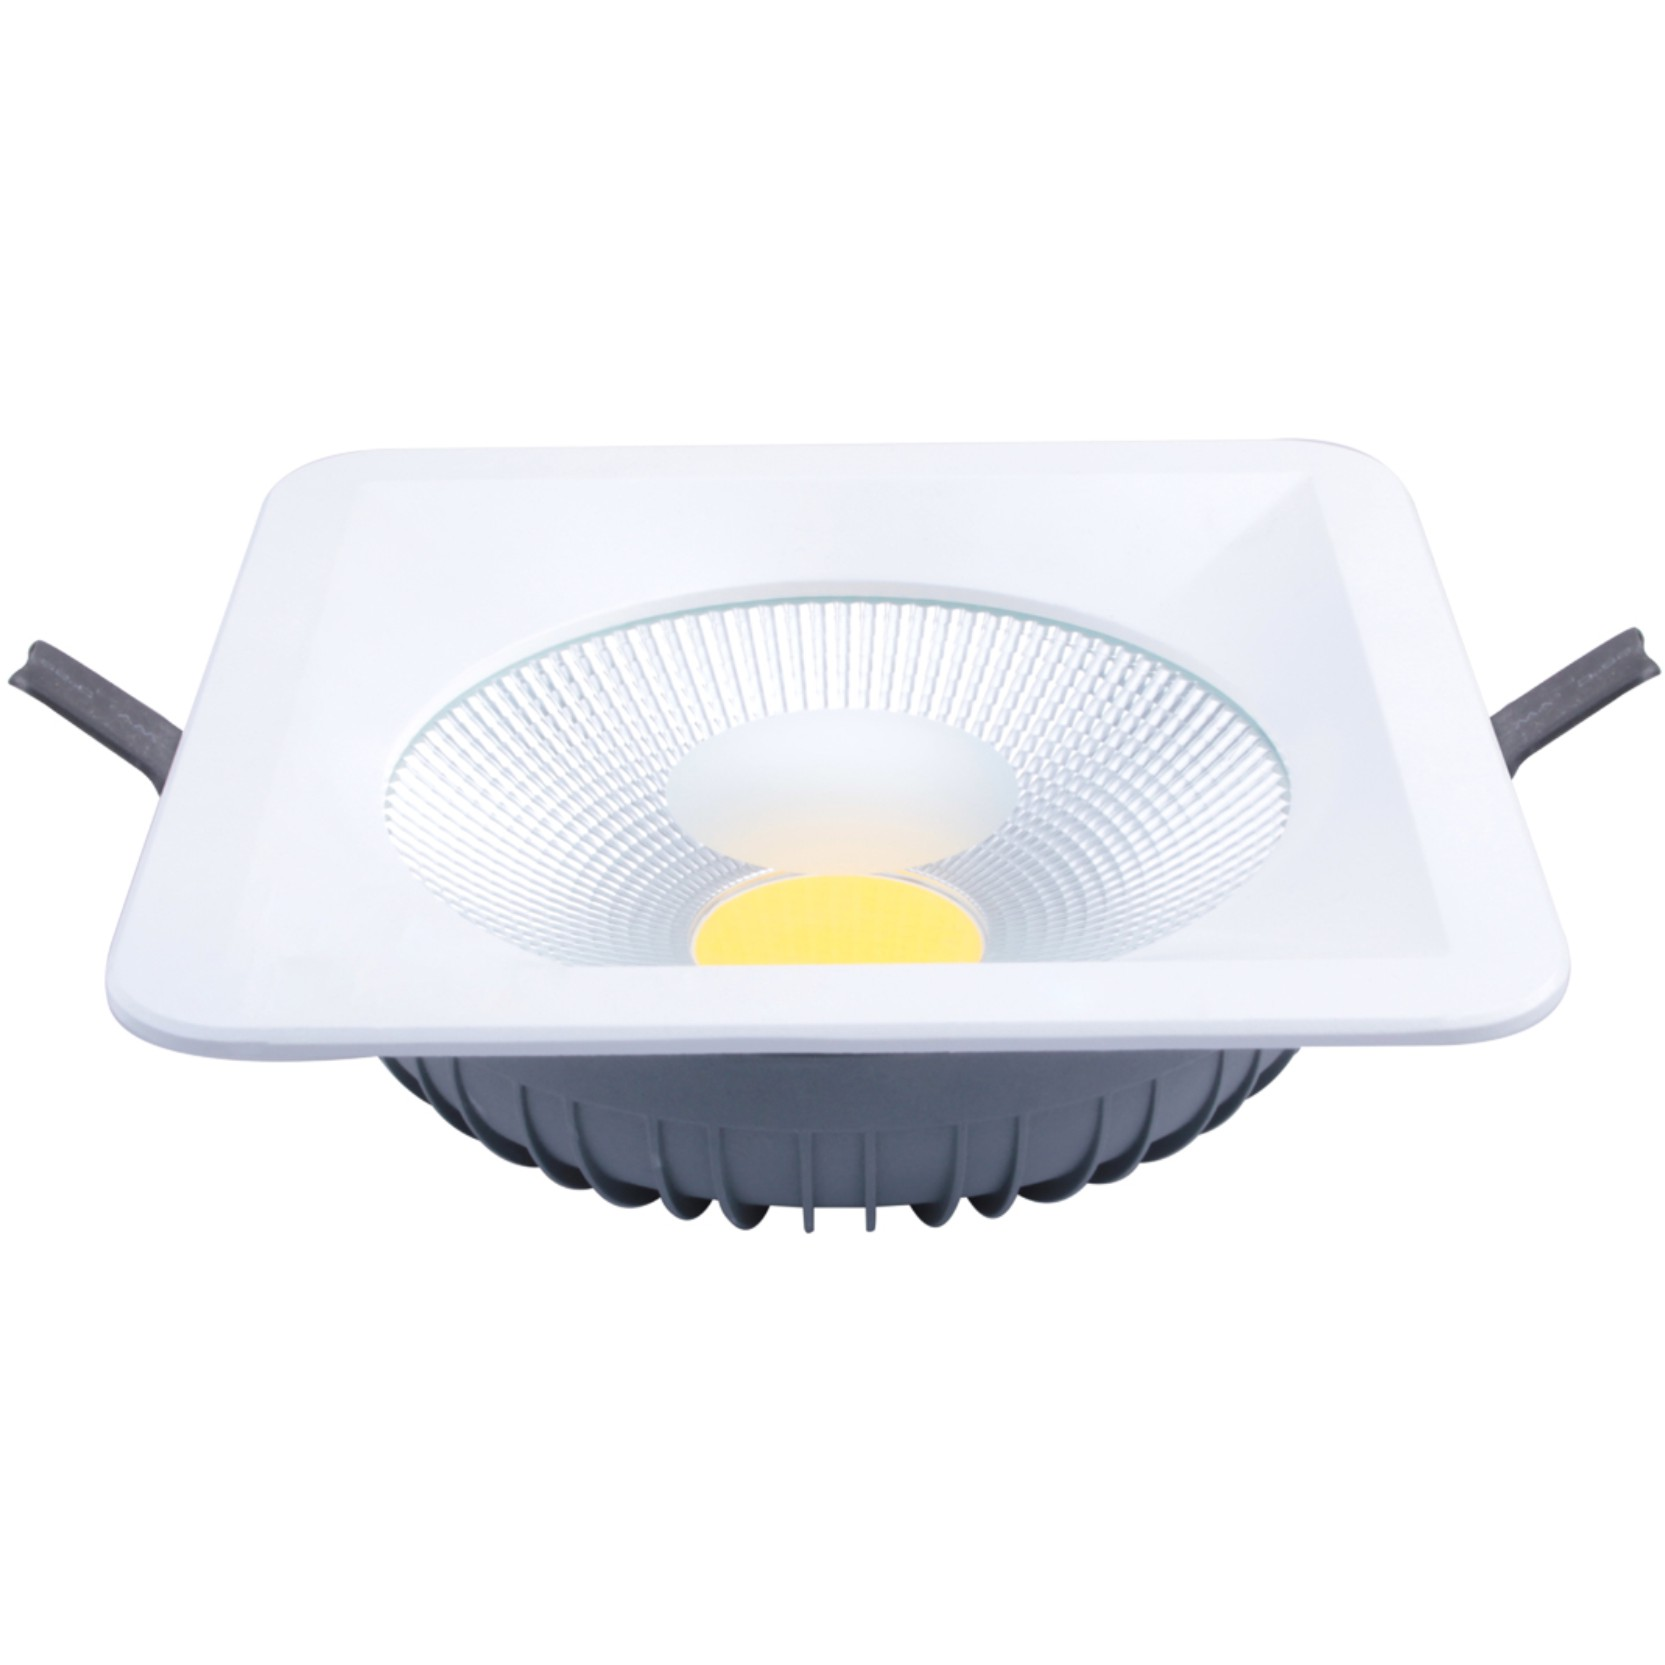 Cob Downlight Product Name Lighting Fixtures India